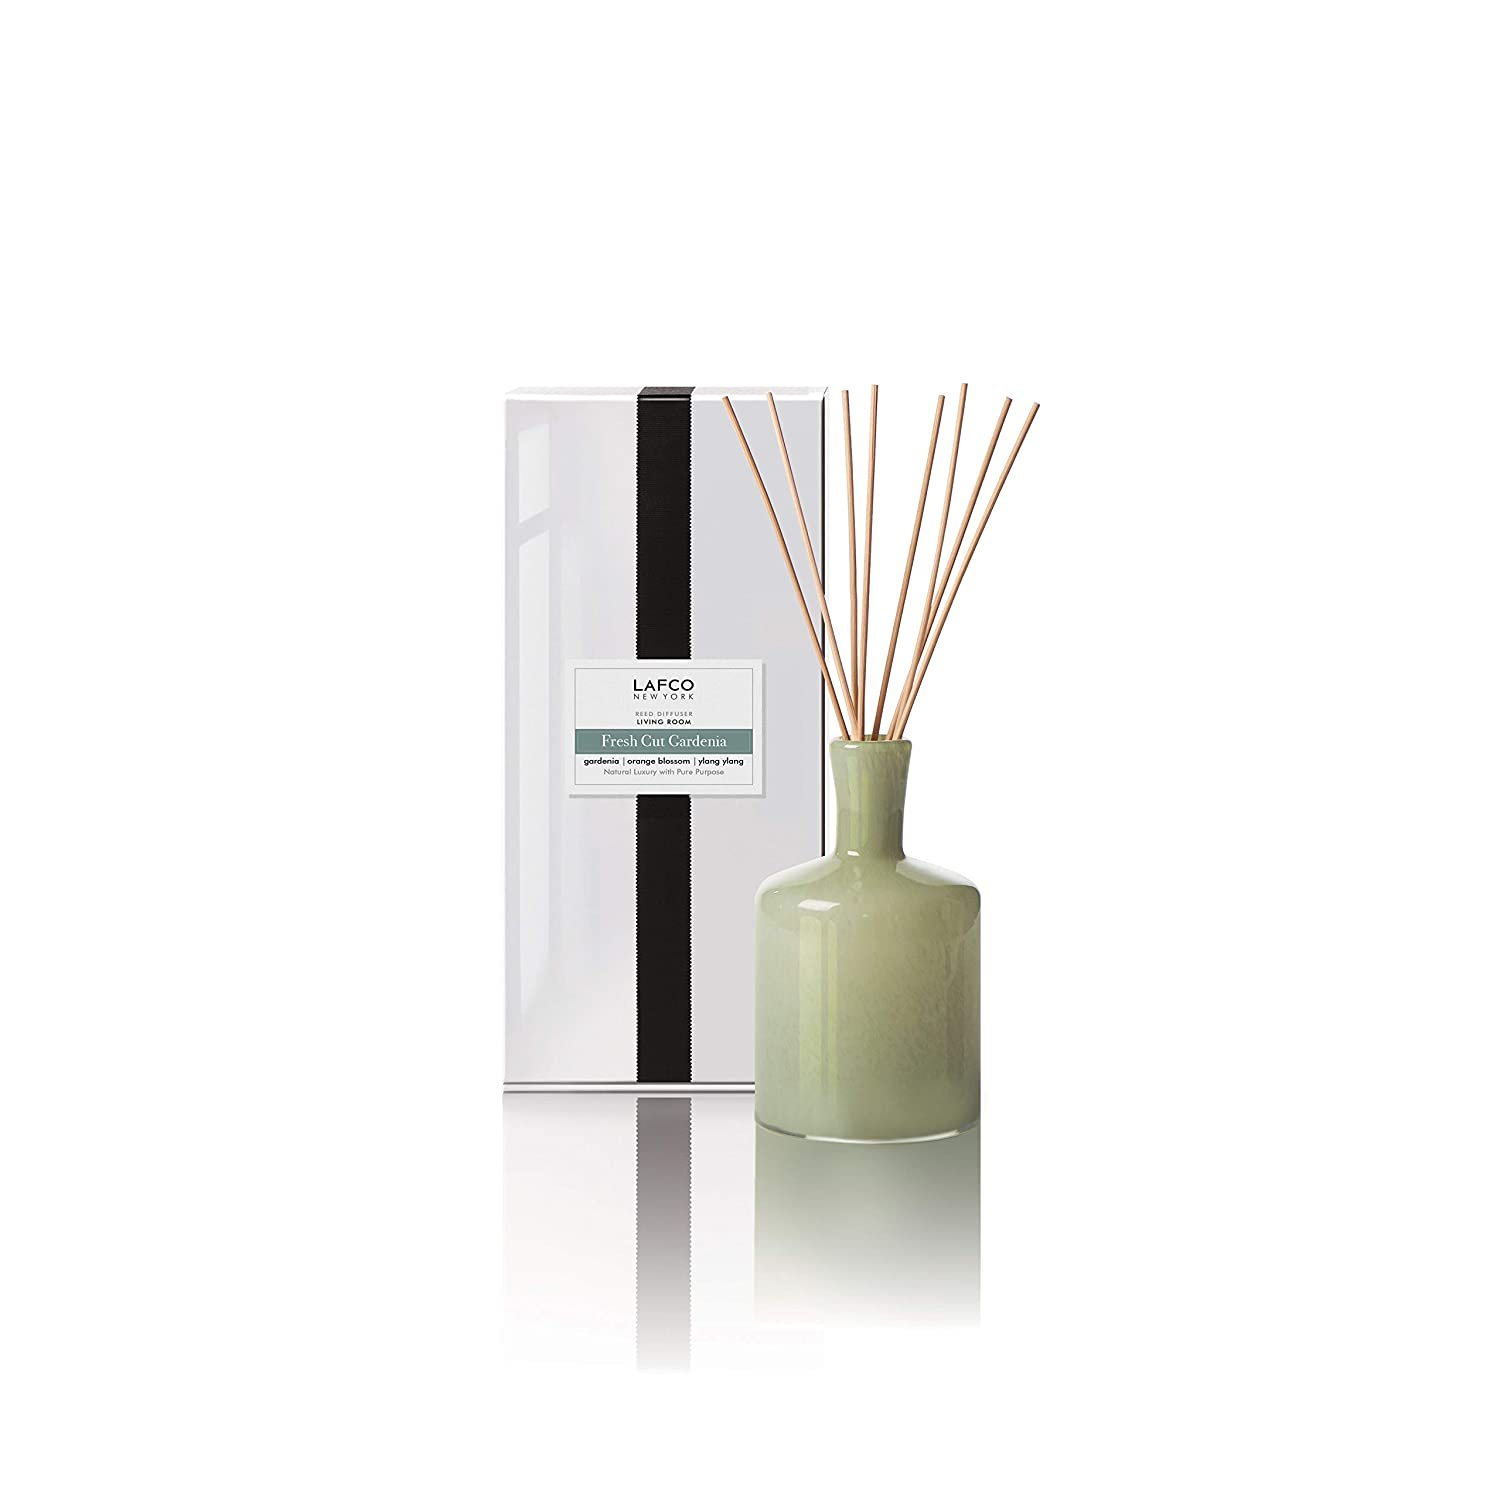 LAFCO Reed Diffuser, Fresh Cut Gardenia, Living Room